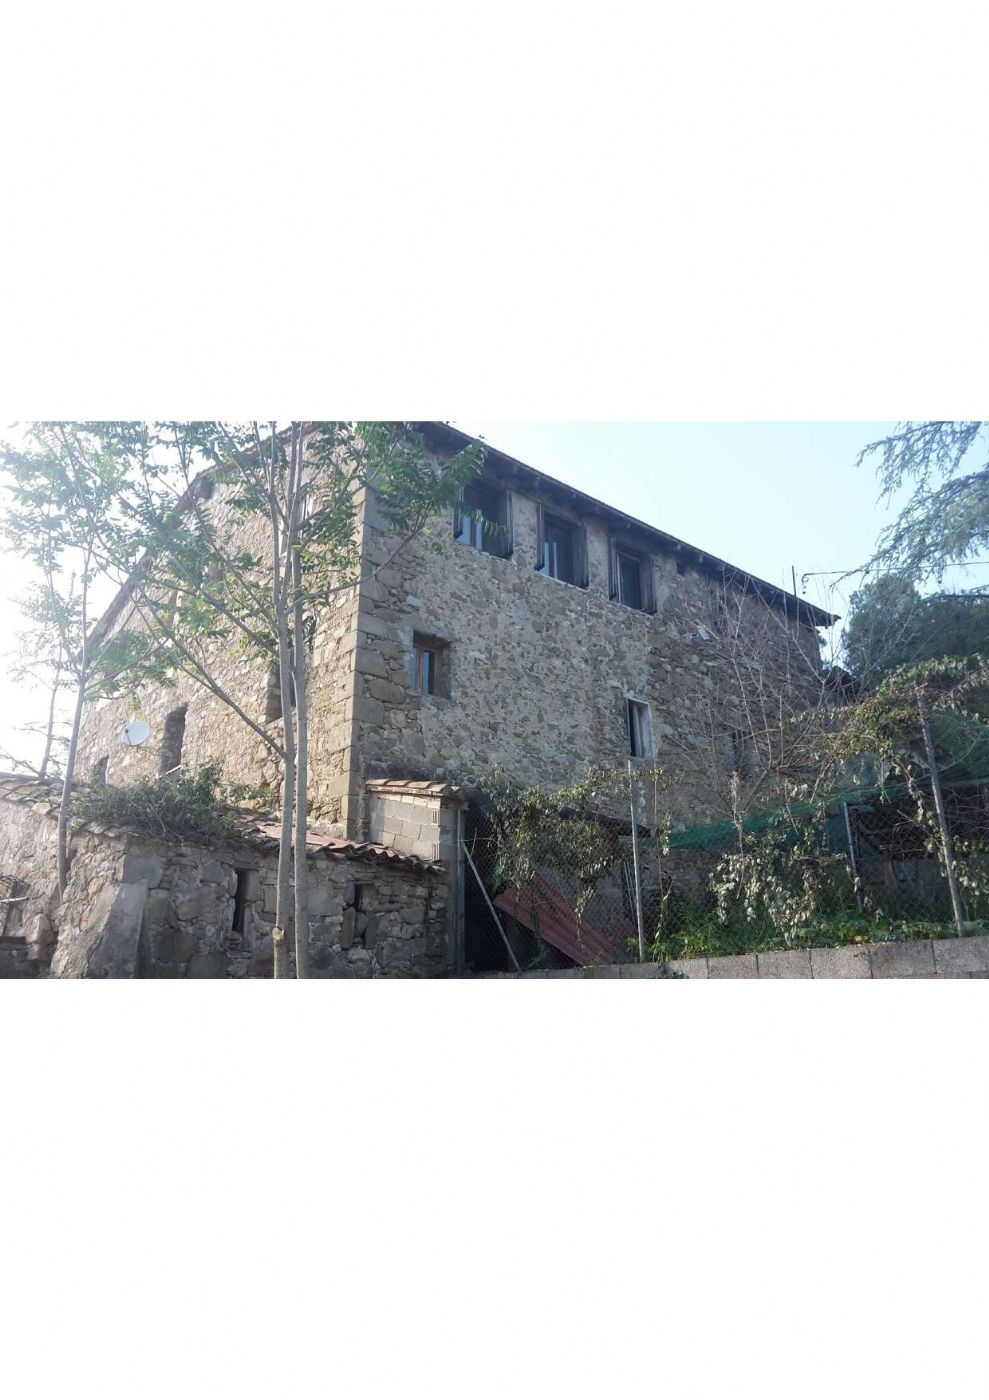 Country house in Afores,. Masia cerca de besalu